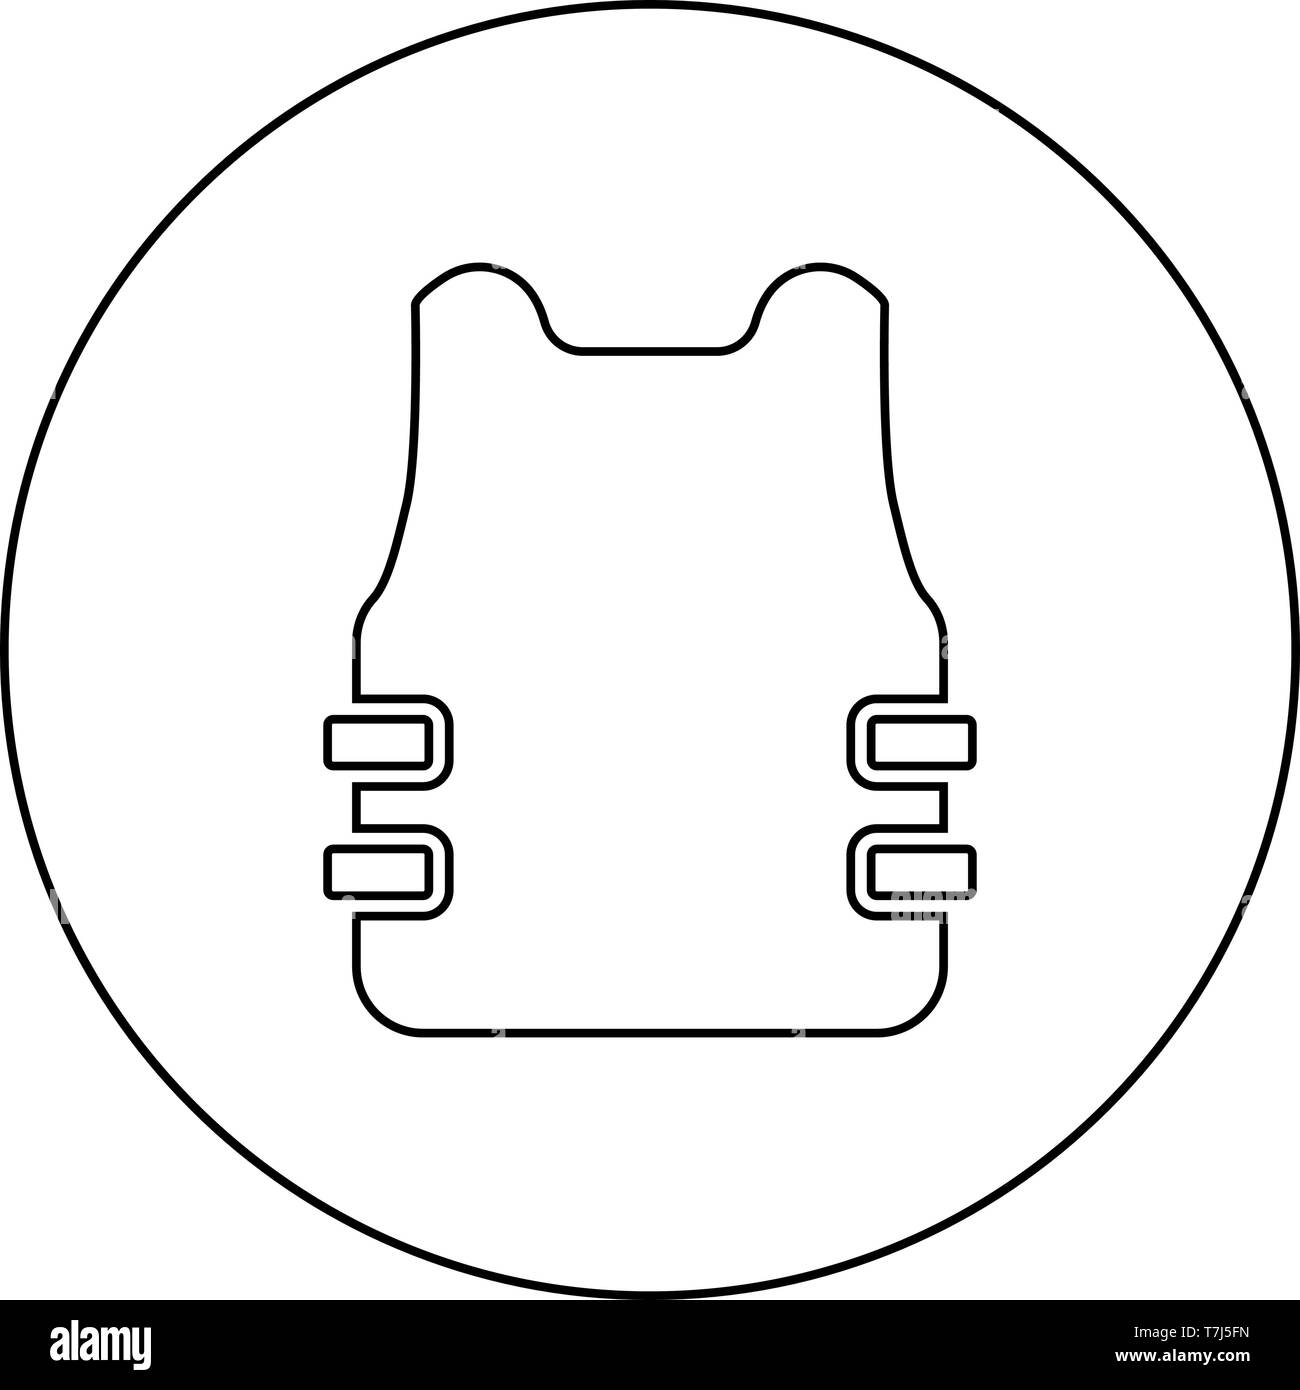 Bullet-proof vest flak jacket icon in circle round outline black color vector illustration flat style simple image - Stock Image